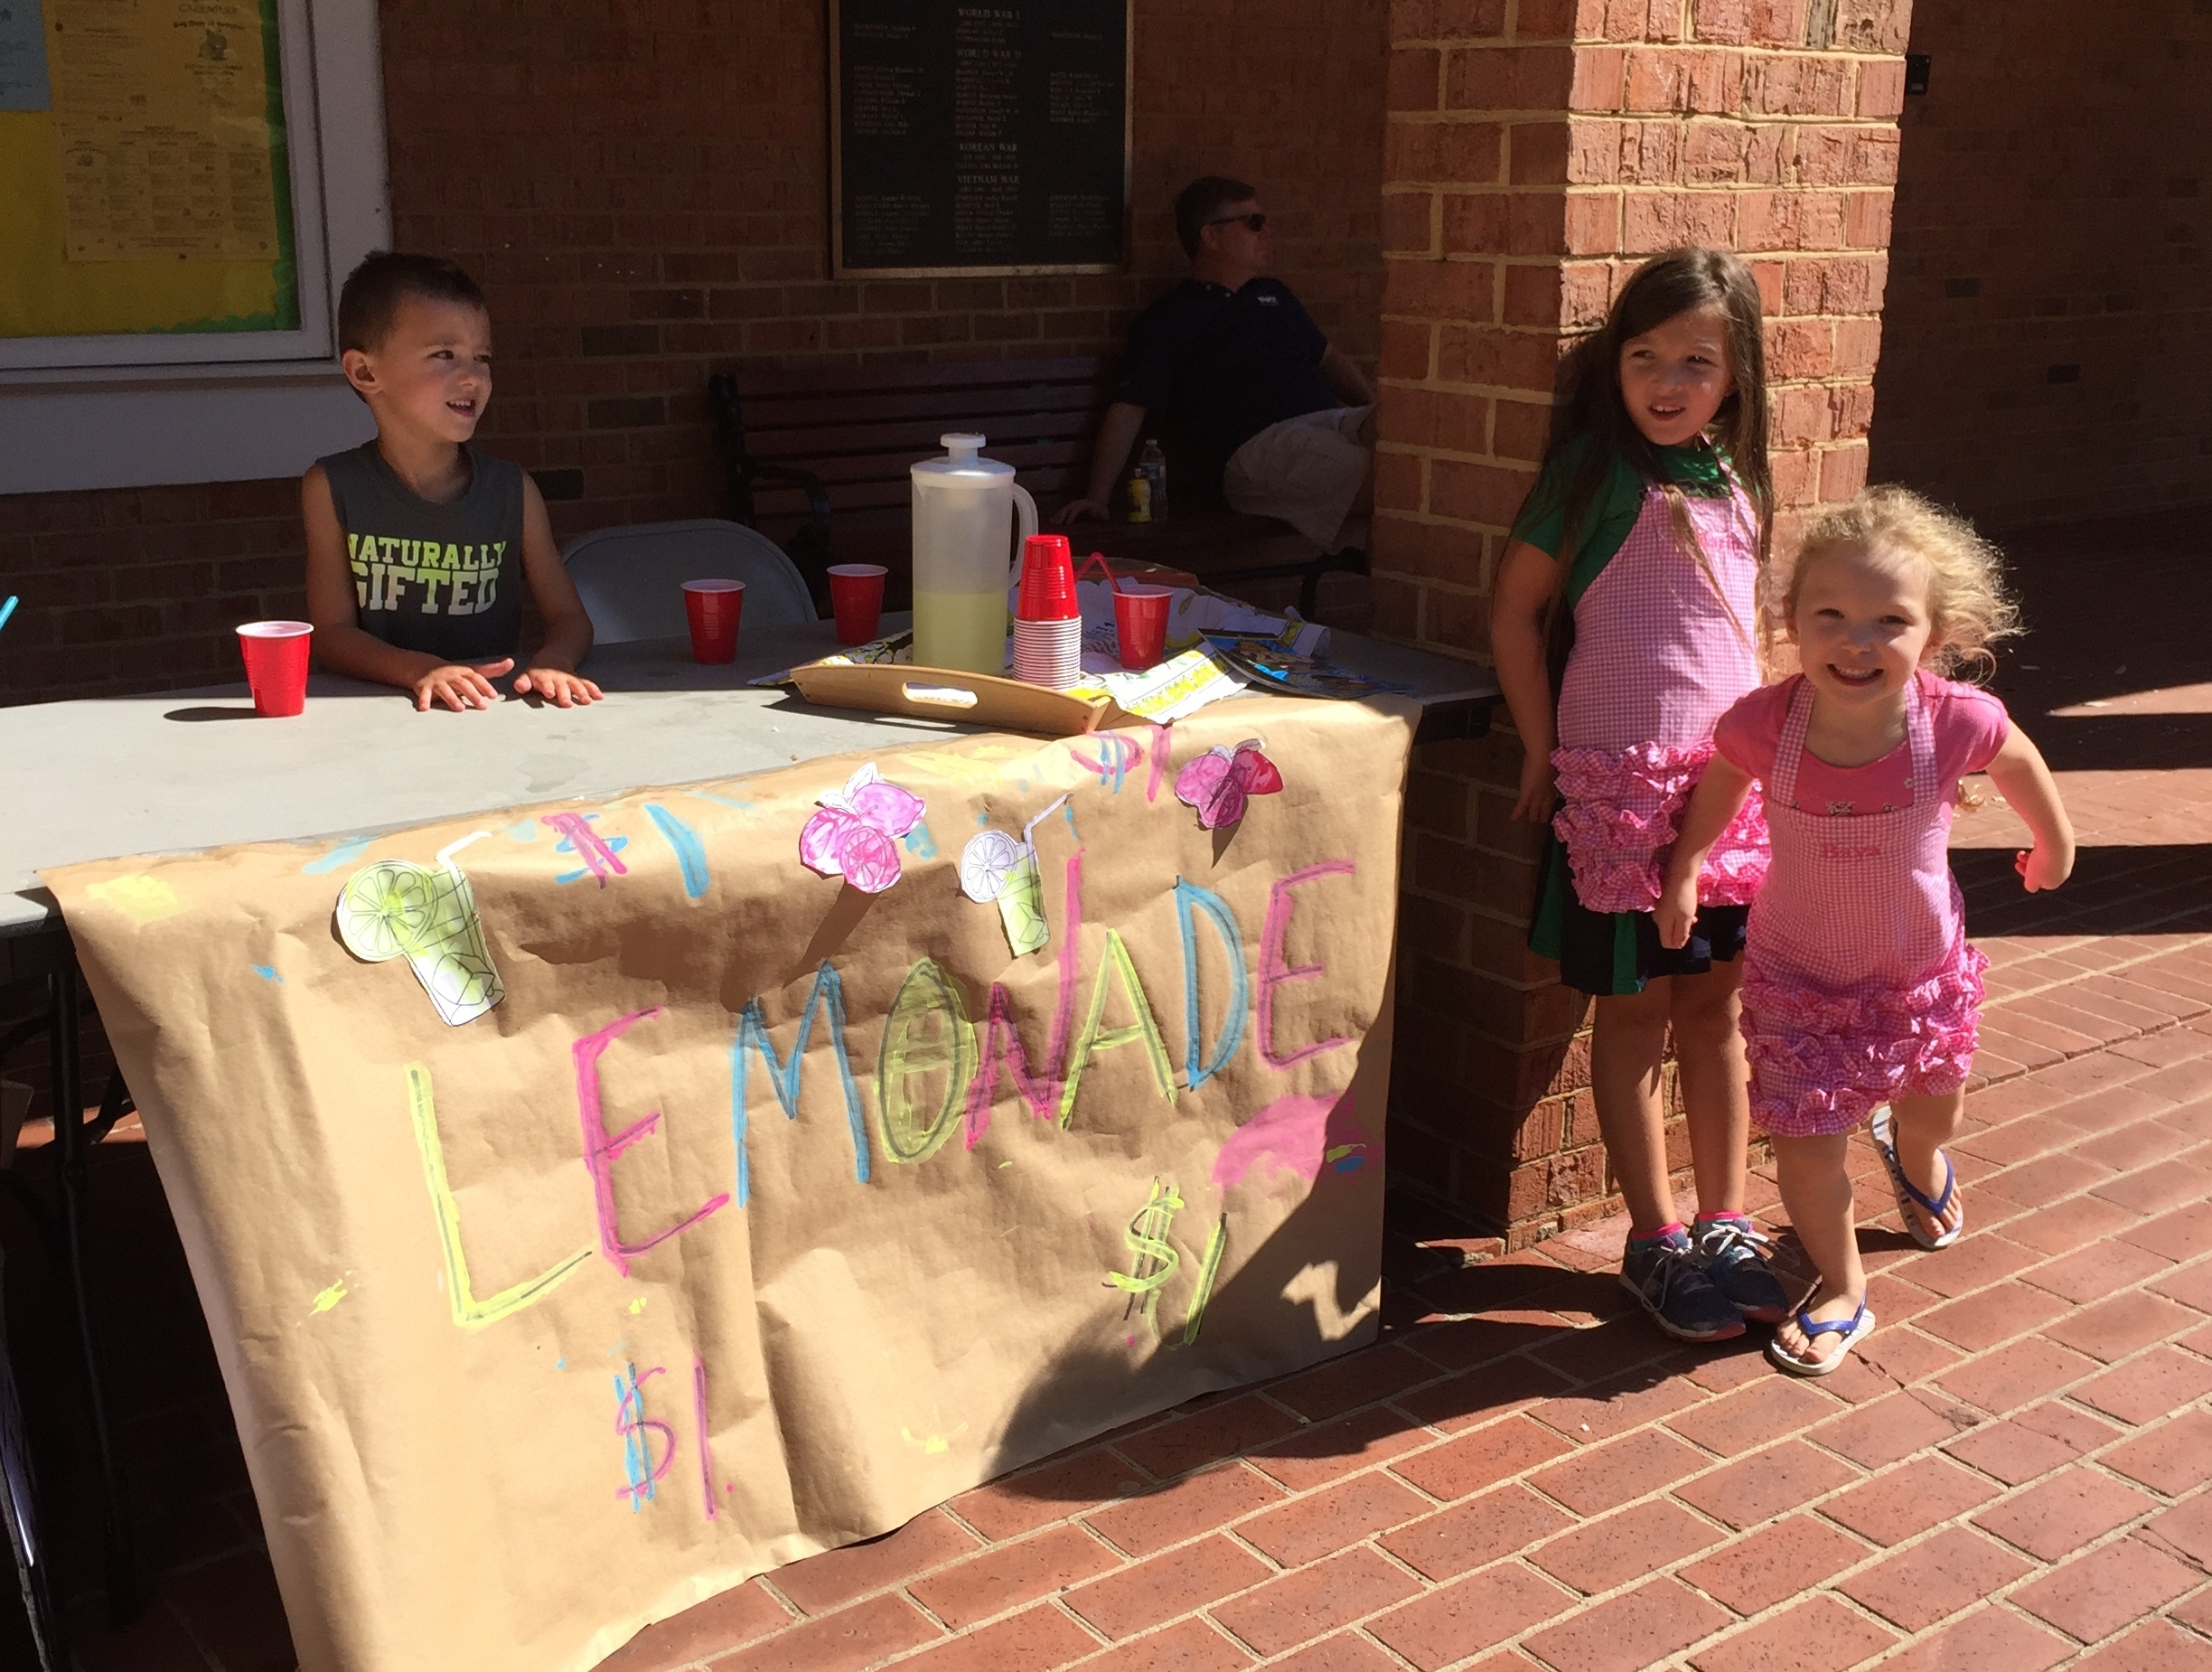 Baya, Marin, and our friend Nate selling lemonade.